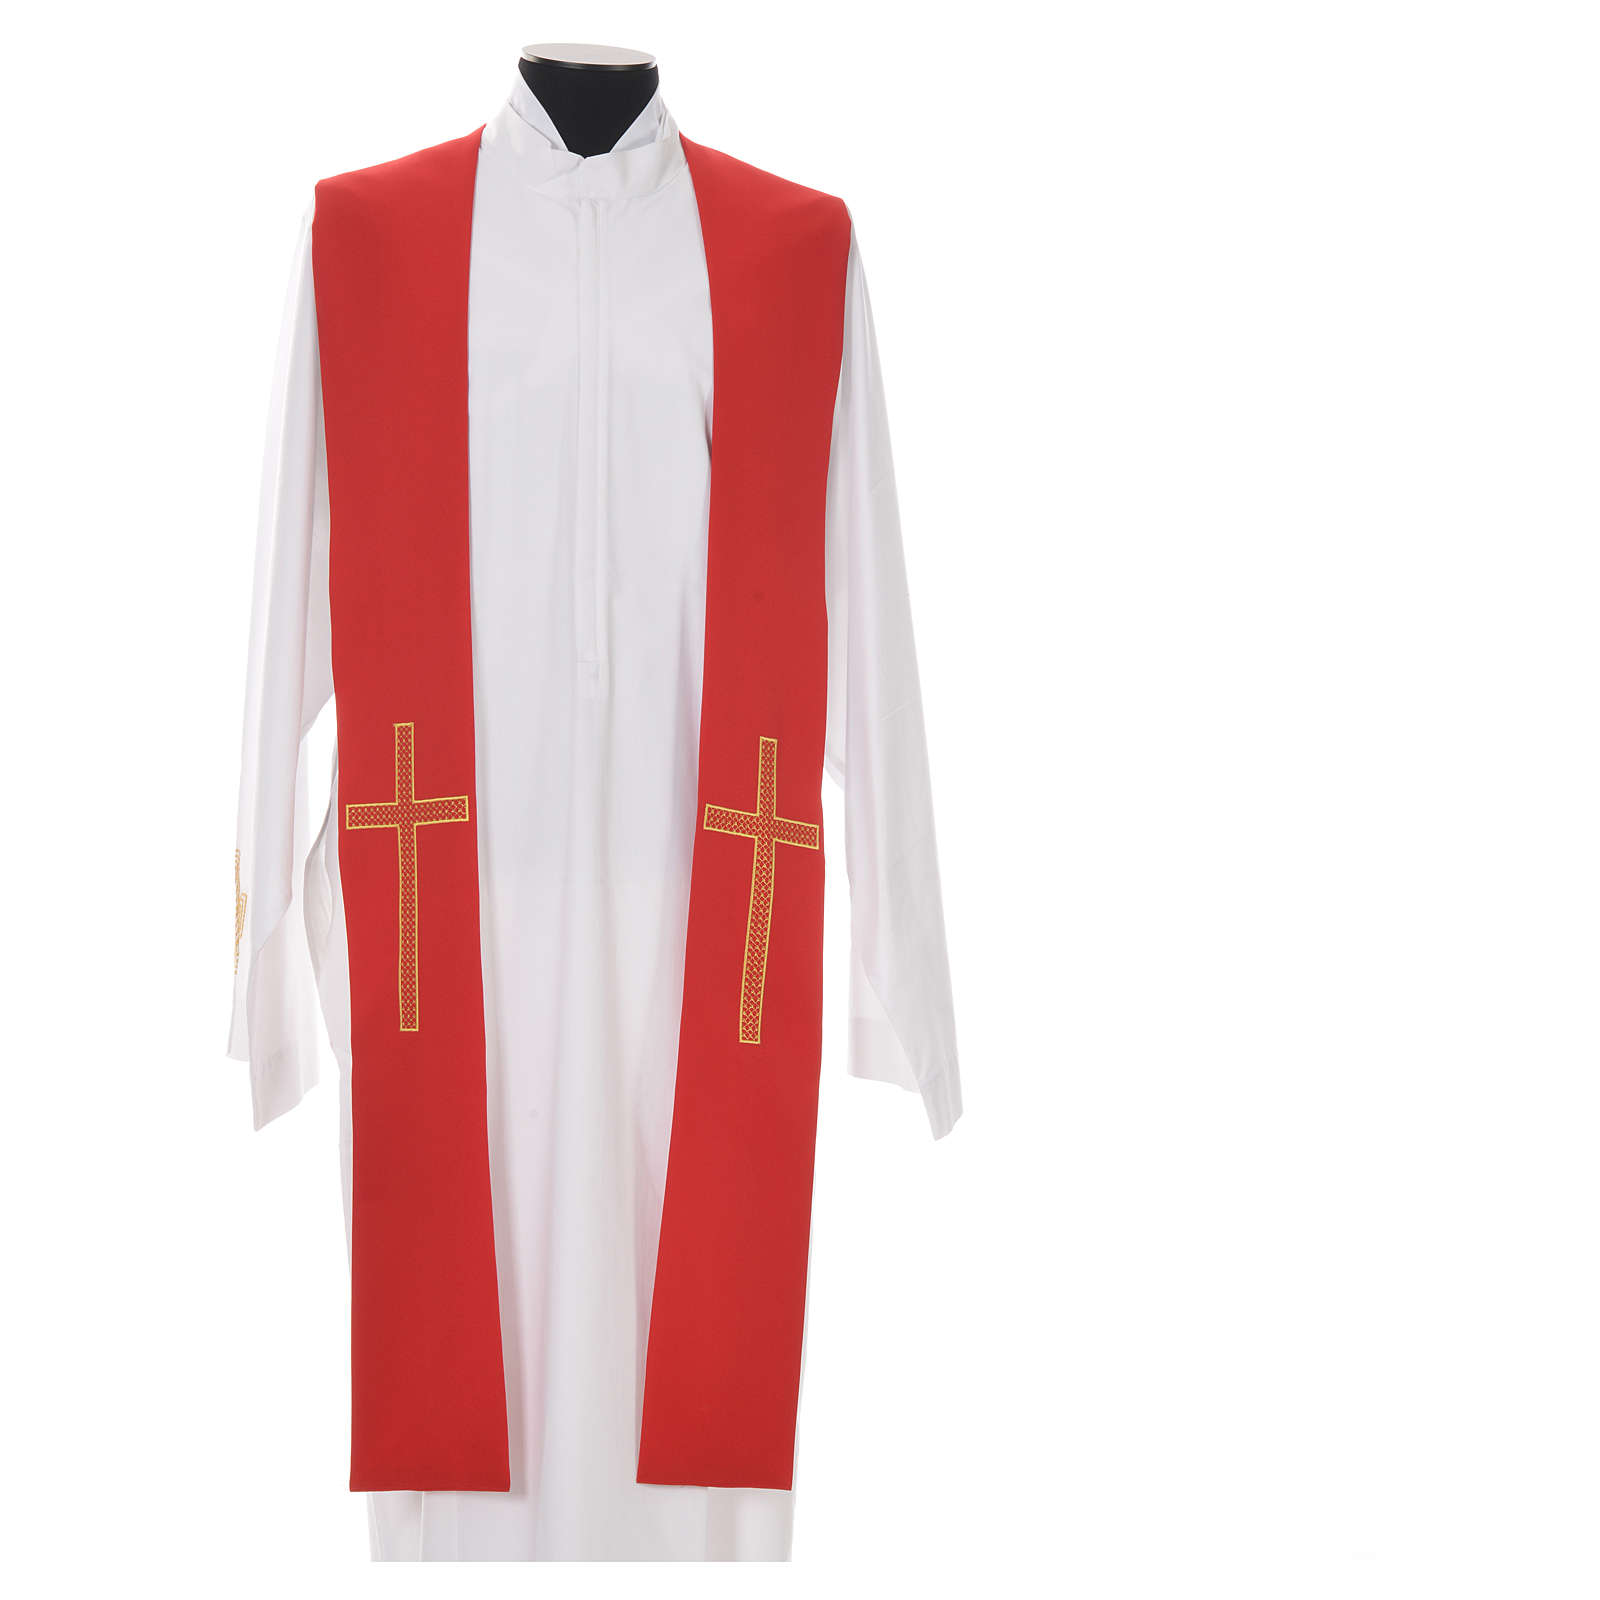 Pastor Stole in 100% polyester, crosses 4